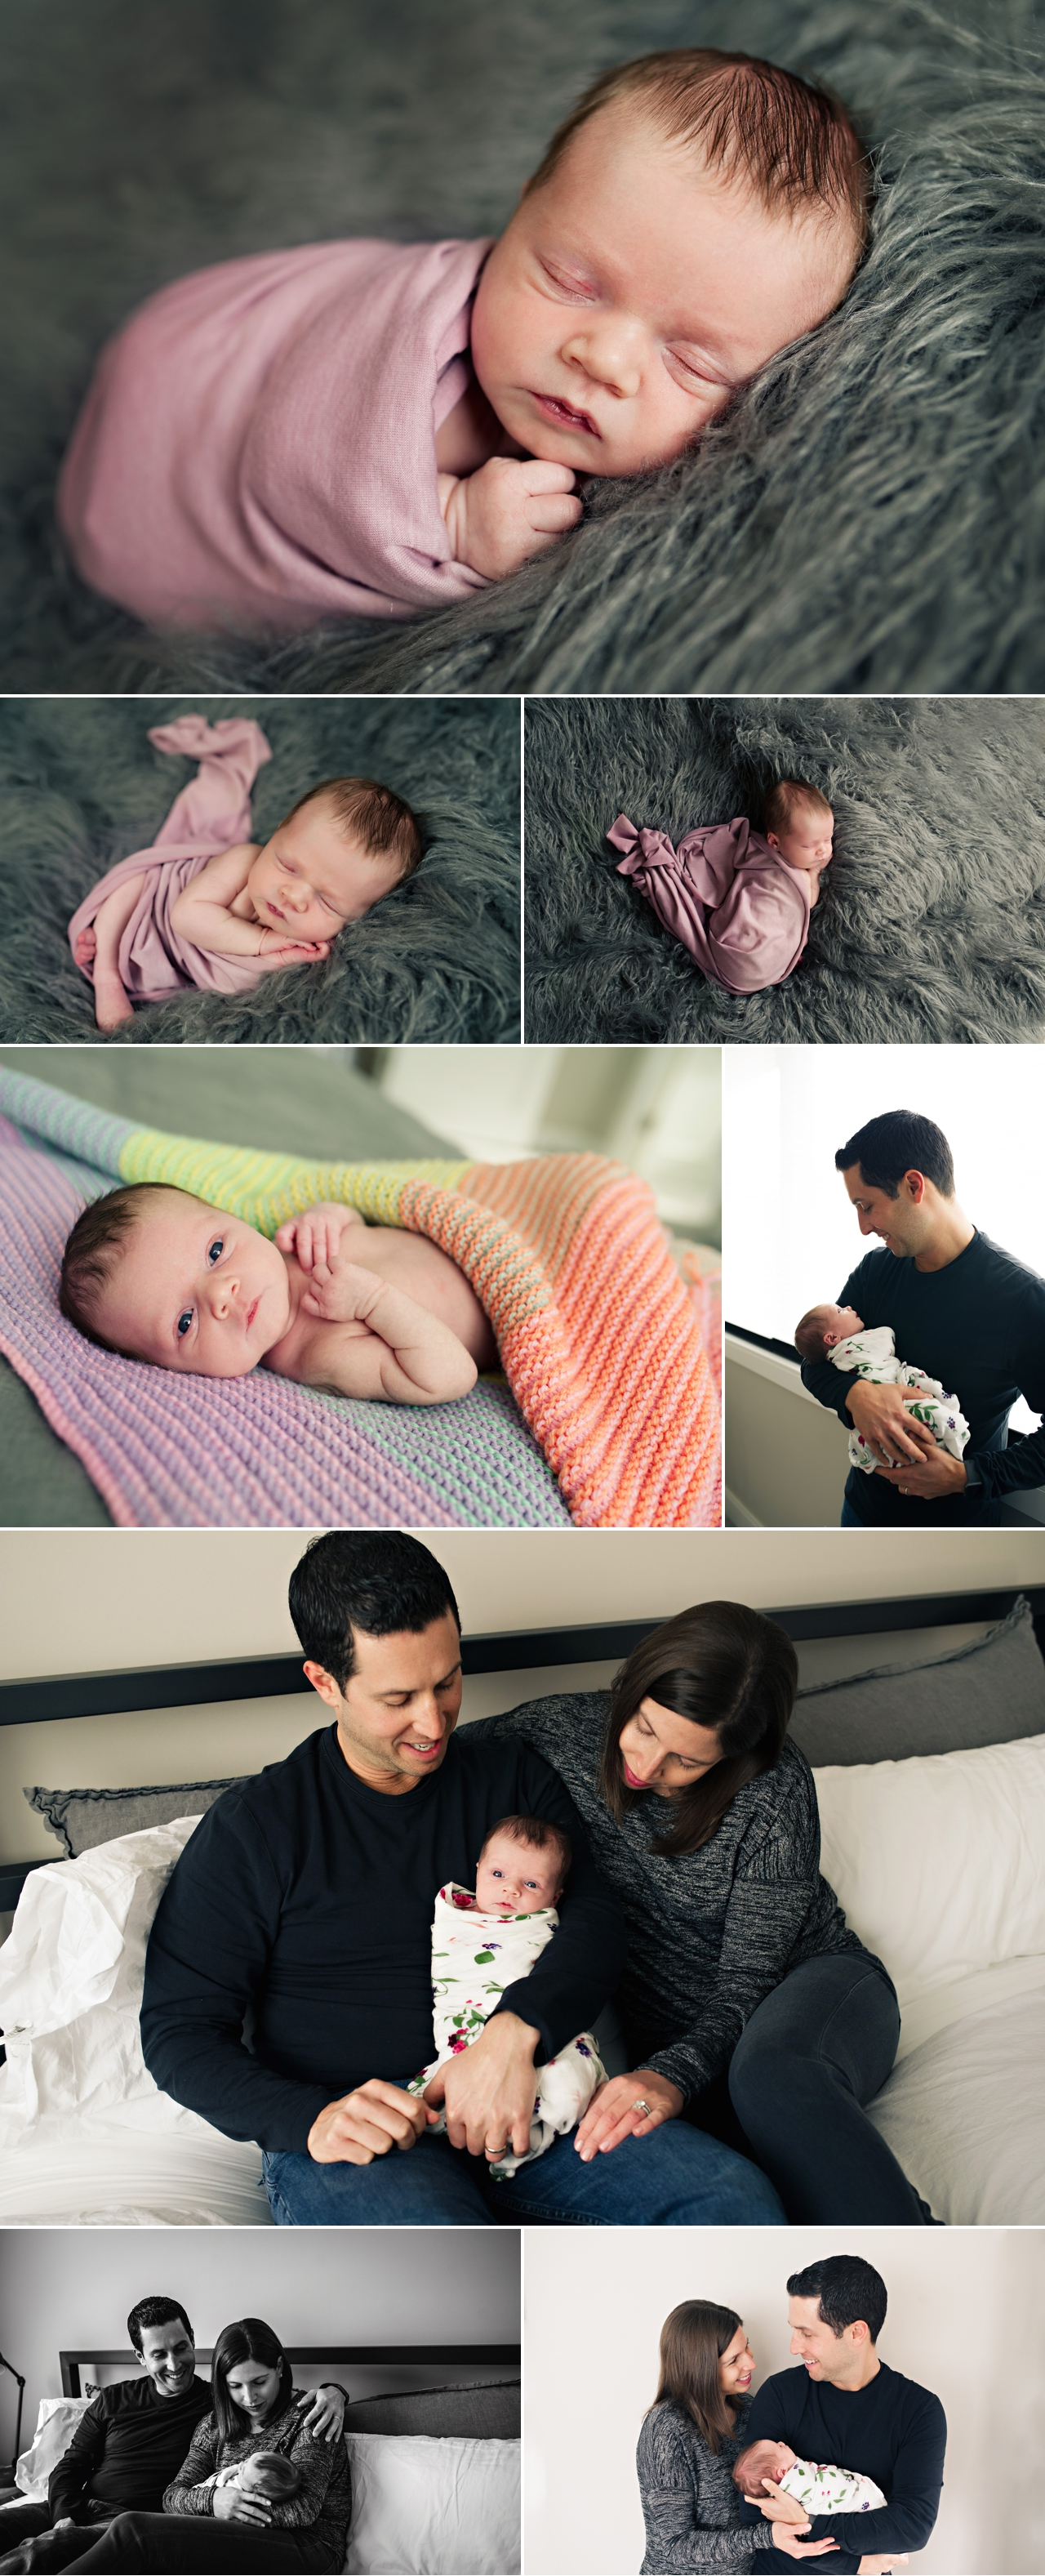 Baby-Gir-E-Denver-Newborn-Photographer-1.jpg